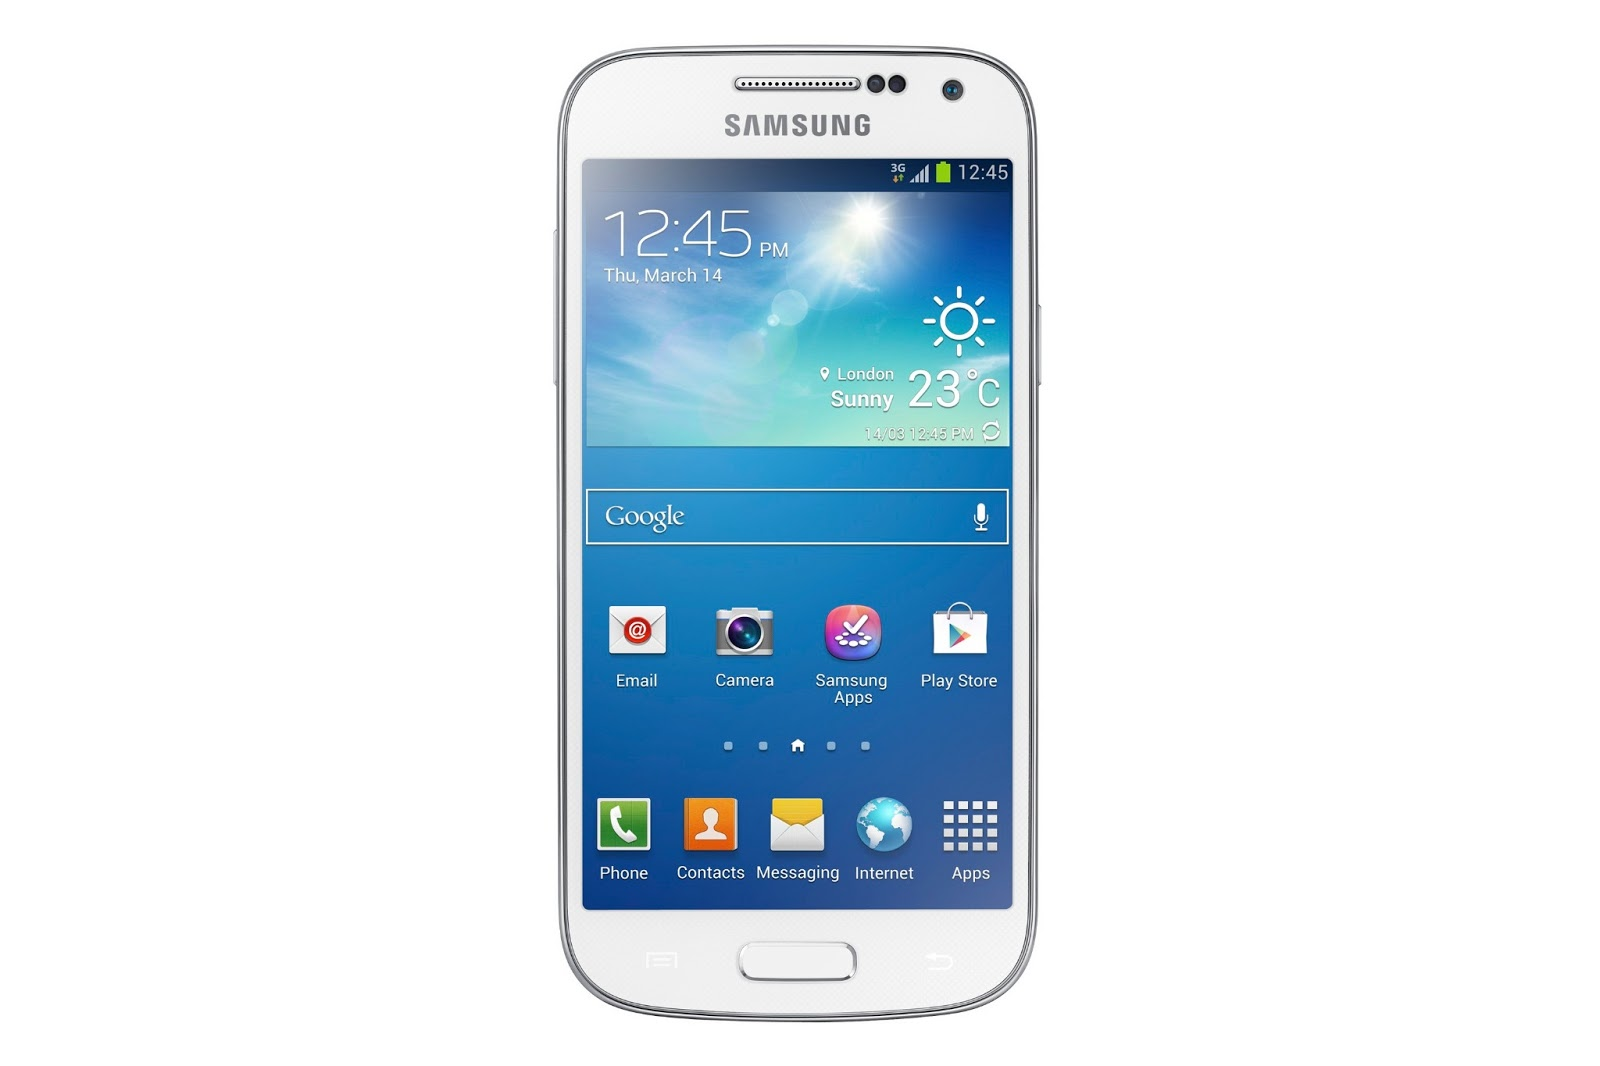 samsung galaxy s4 mini s4 active officially announced galaxy s4 zoom images leaked techdroid. Black Bedroom Furniture Sets. Home Design Ideas